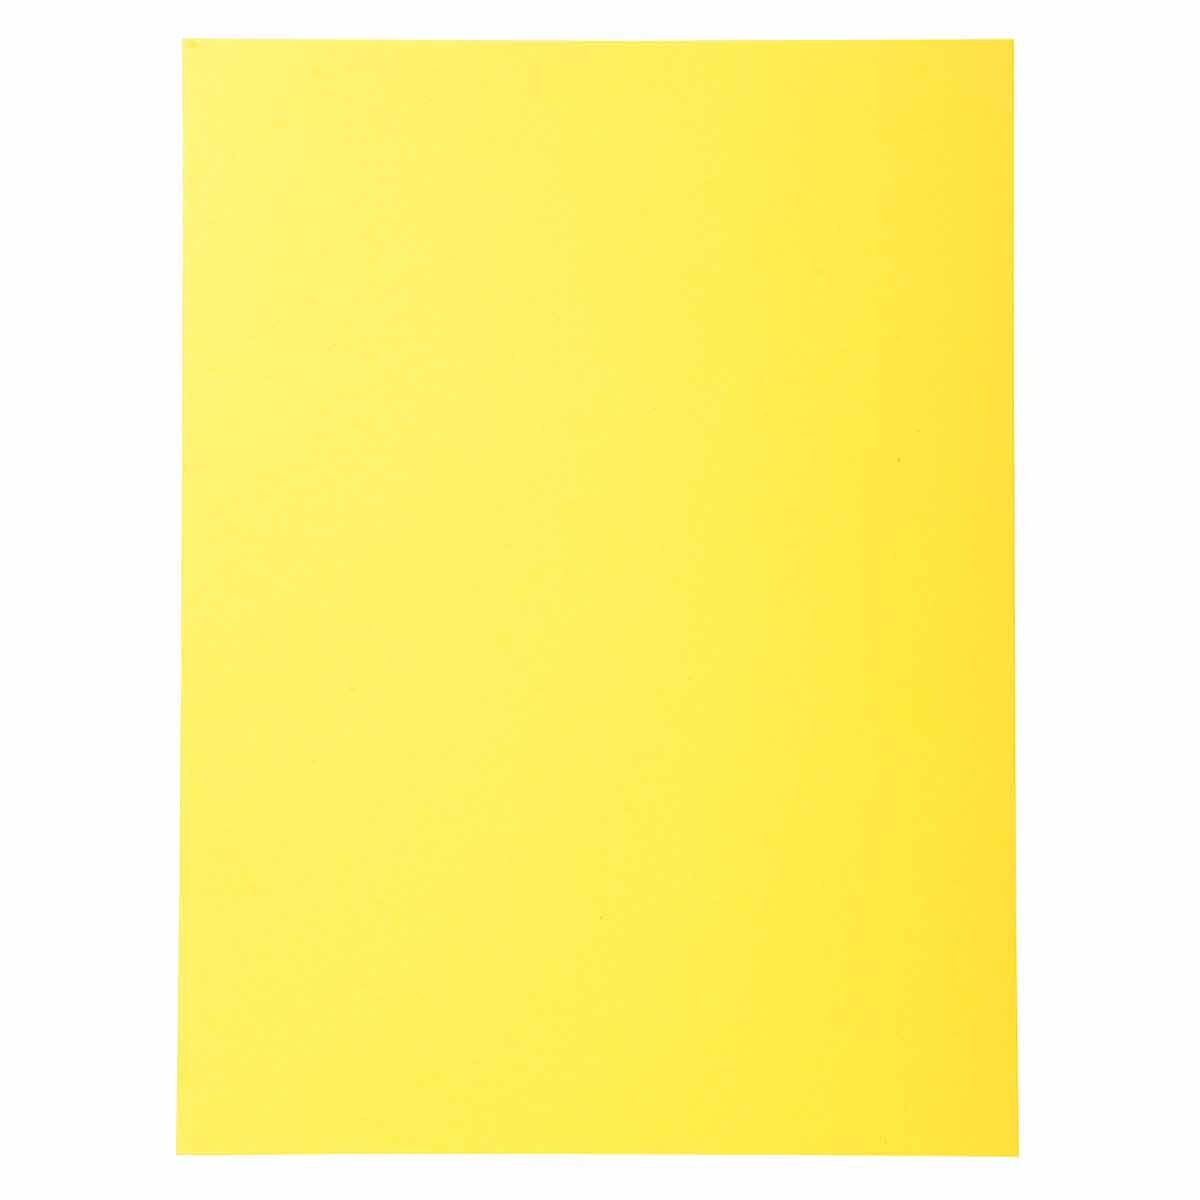 Exacompta Forever Square Cut Folders A4 170gsm 5 Packs of 100 Yellow